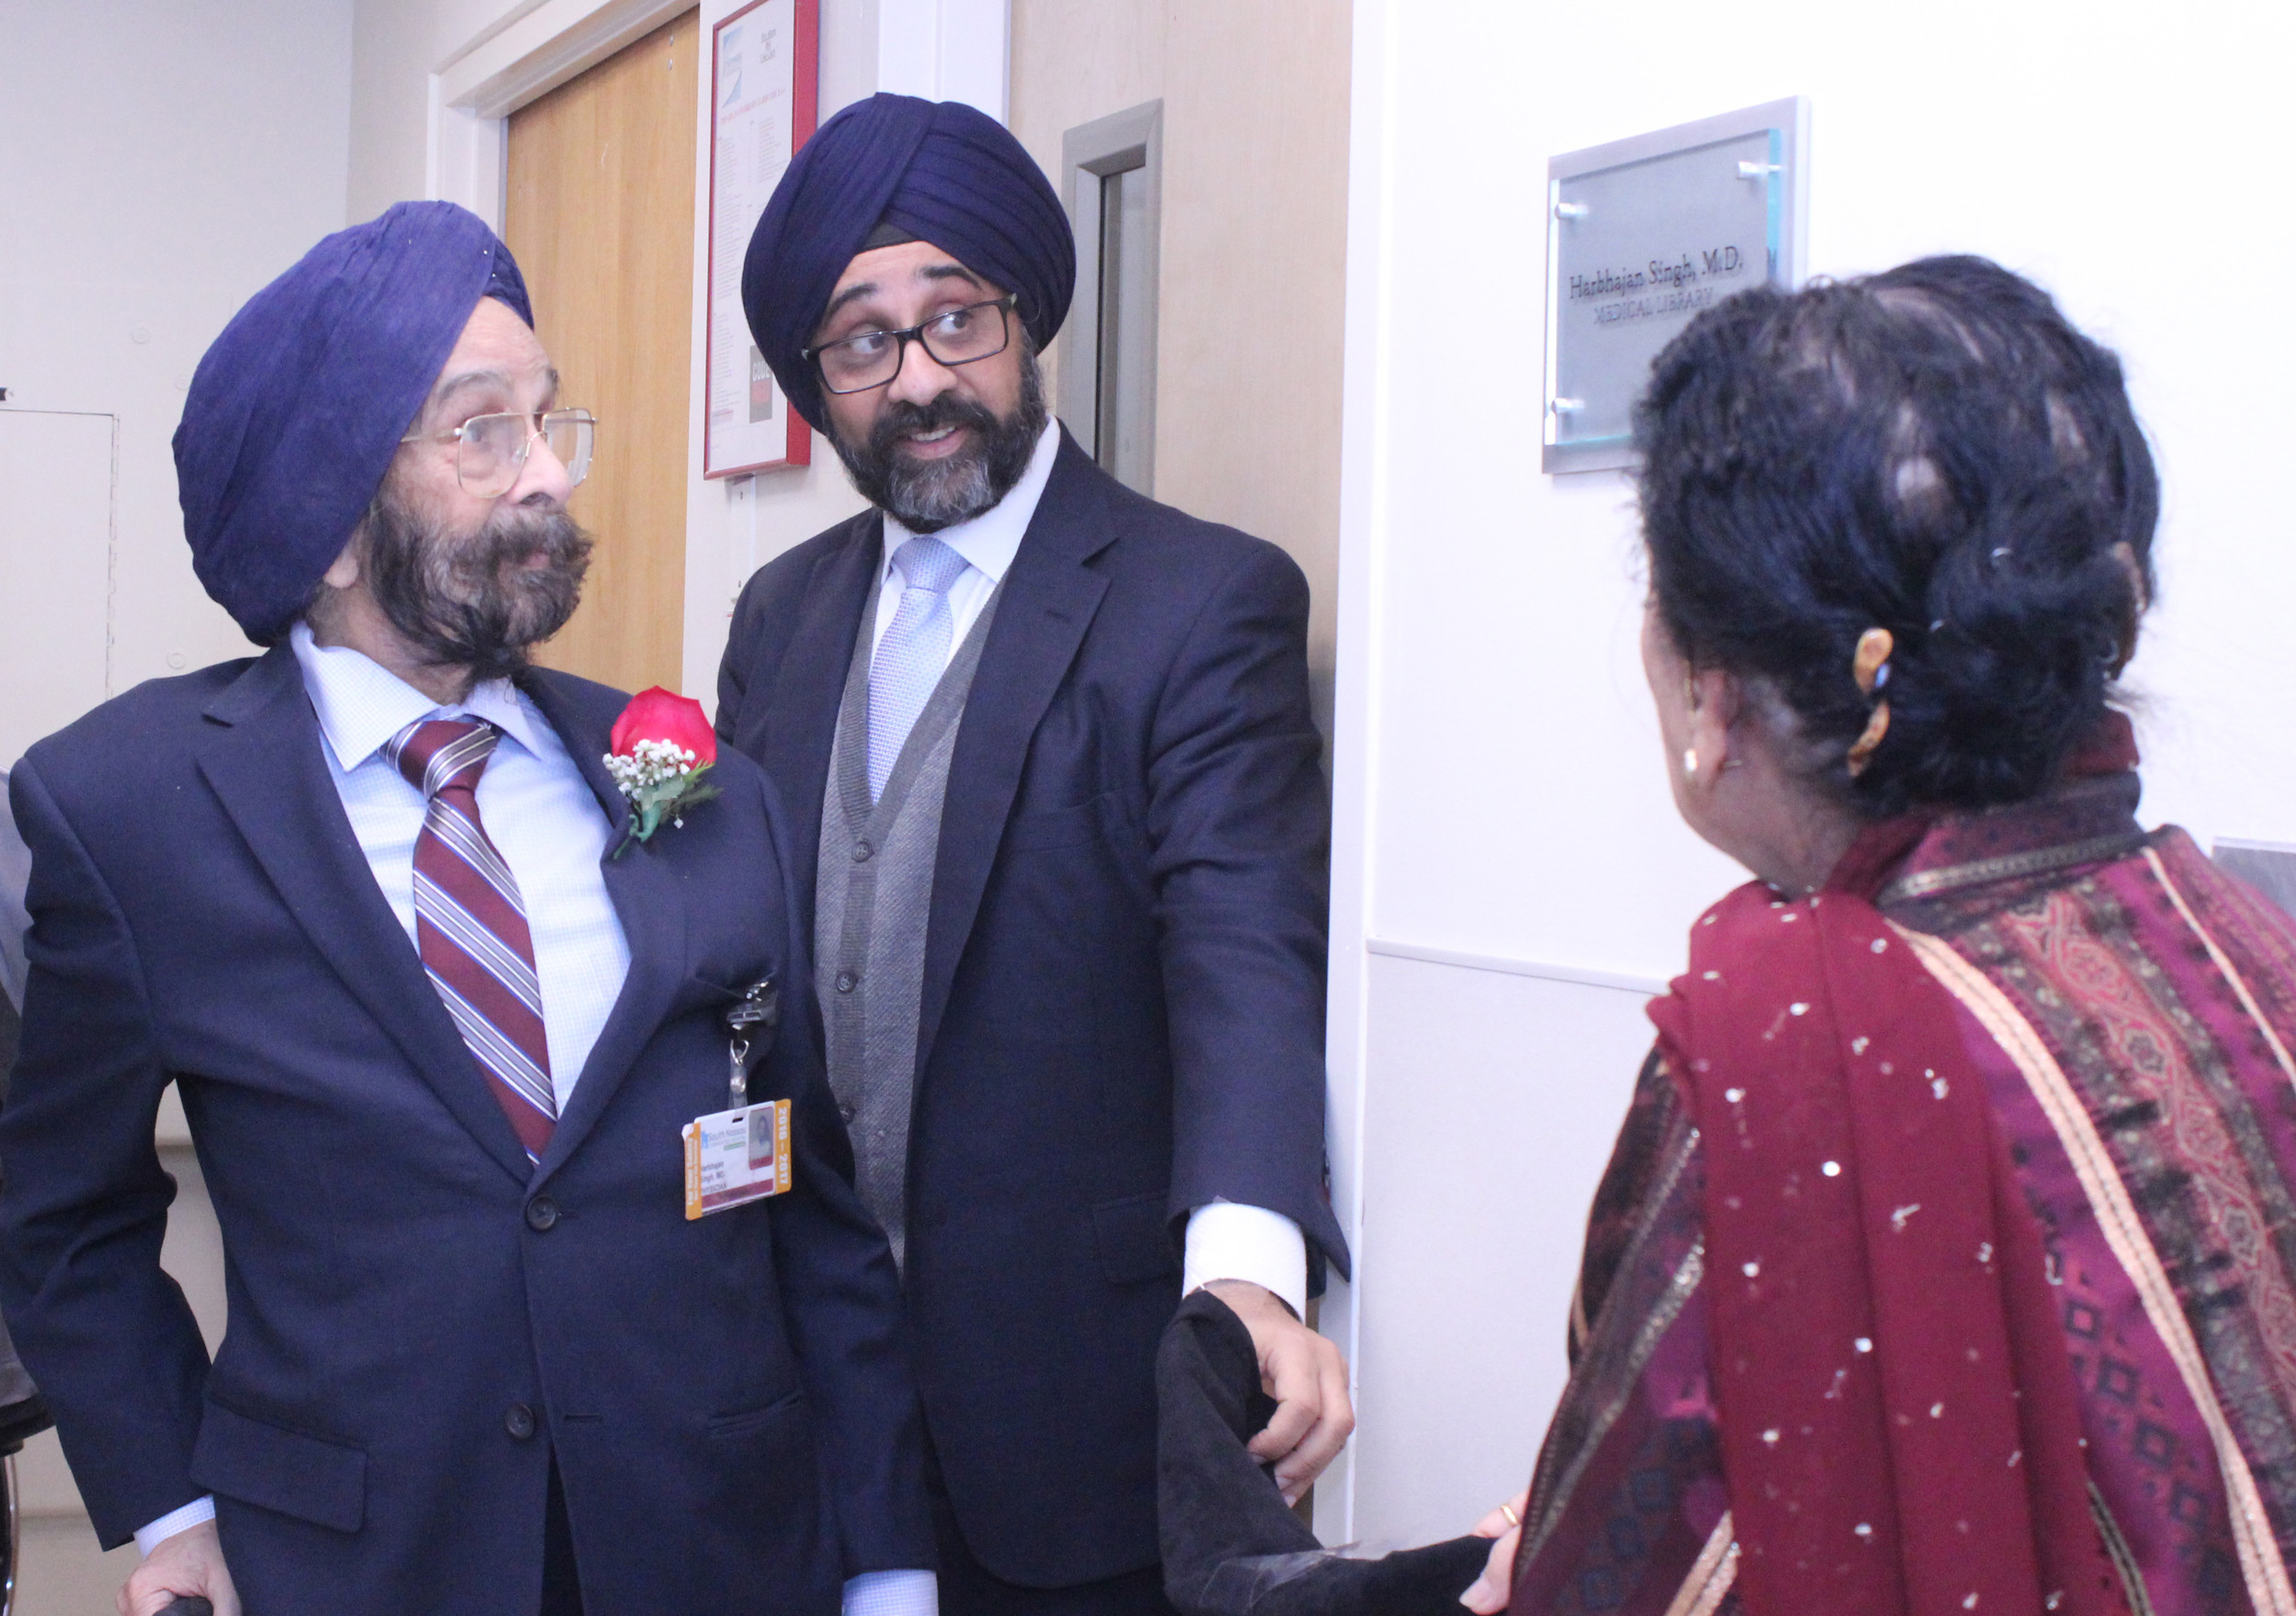 Dr. Harbhajan Singh, left, admired the new sign that bears his name outside the hospital's medical library. His wife, Naginder, and their oldest son, Charnjit, helped with the unveiling.